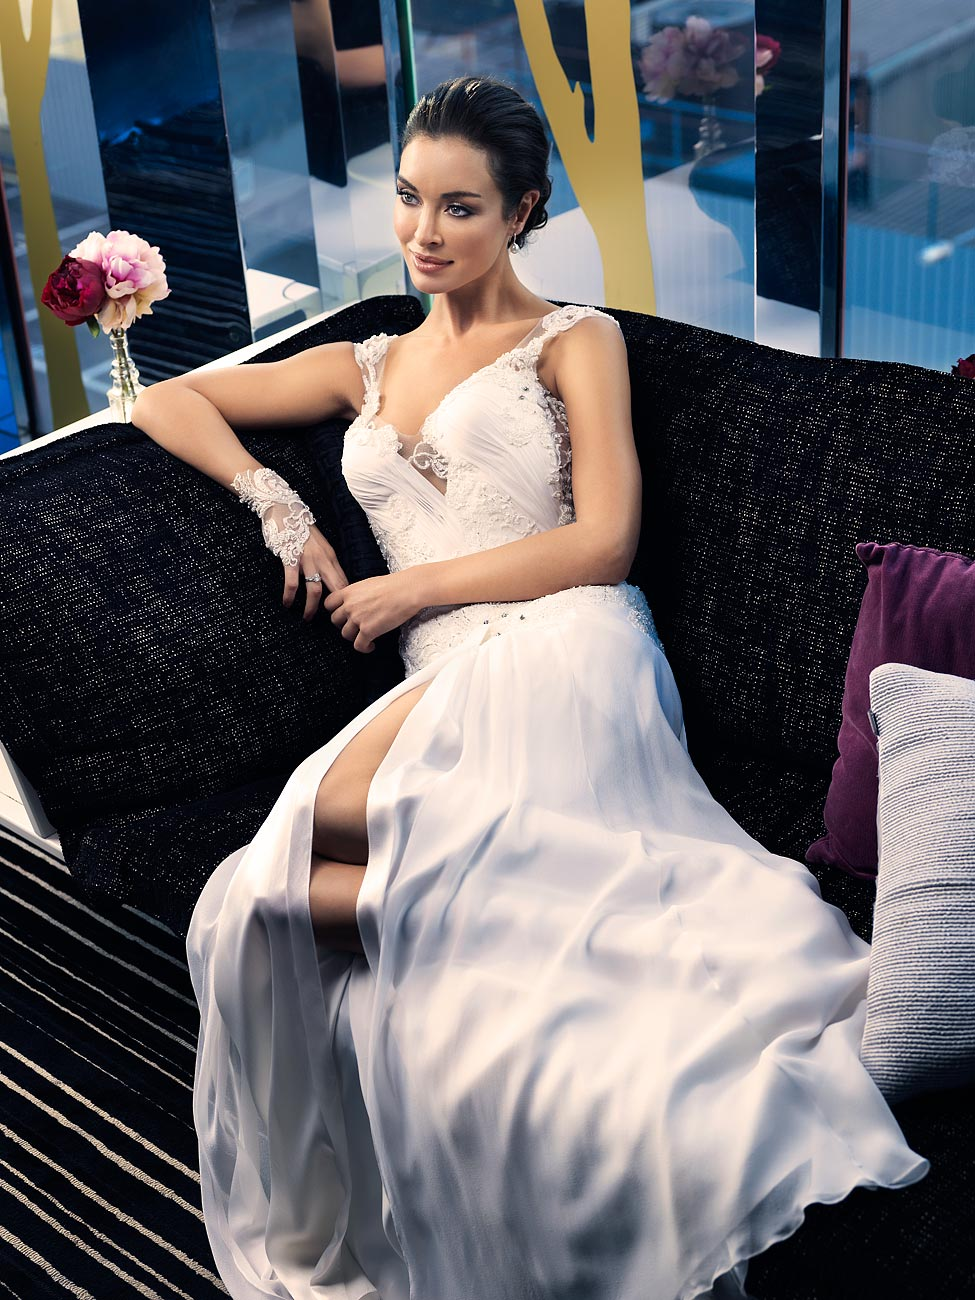 complete-wedding-magazine-fashion-editorial-photography-7.jpg